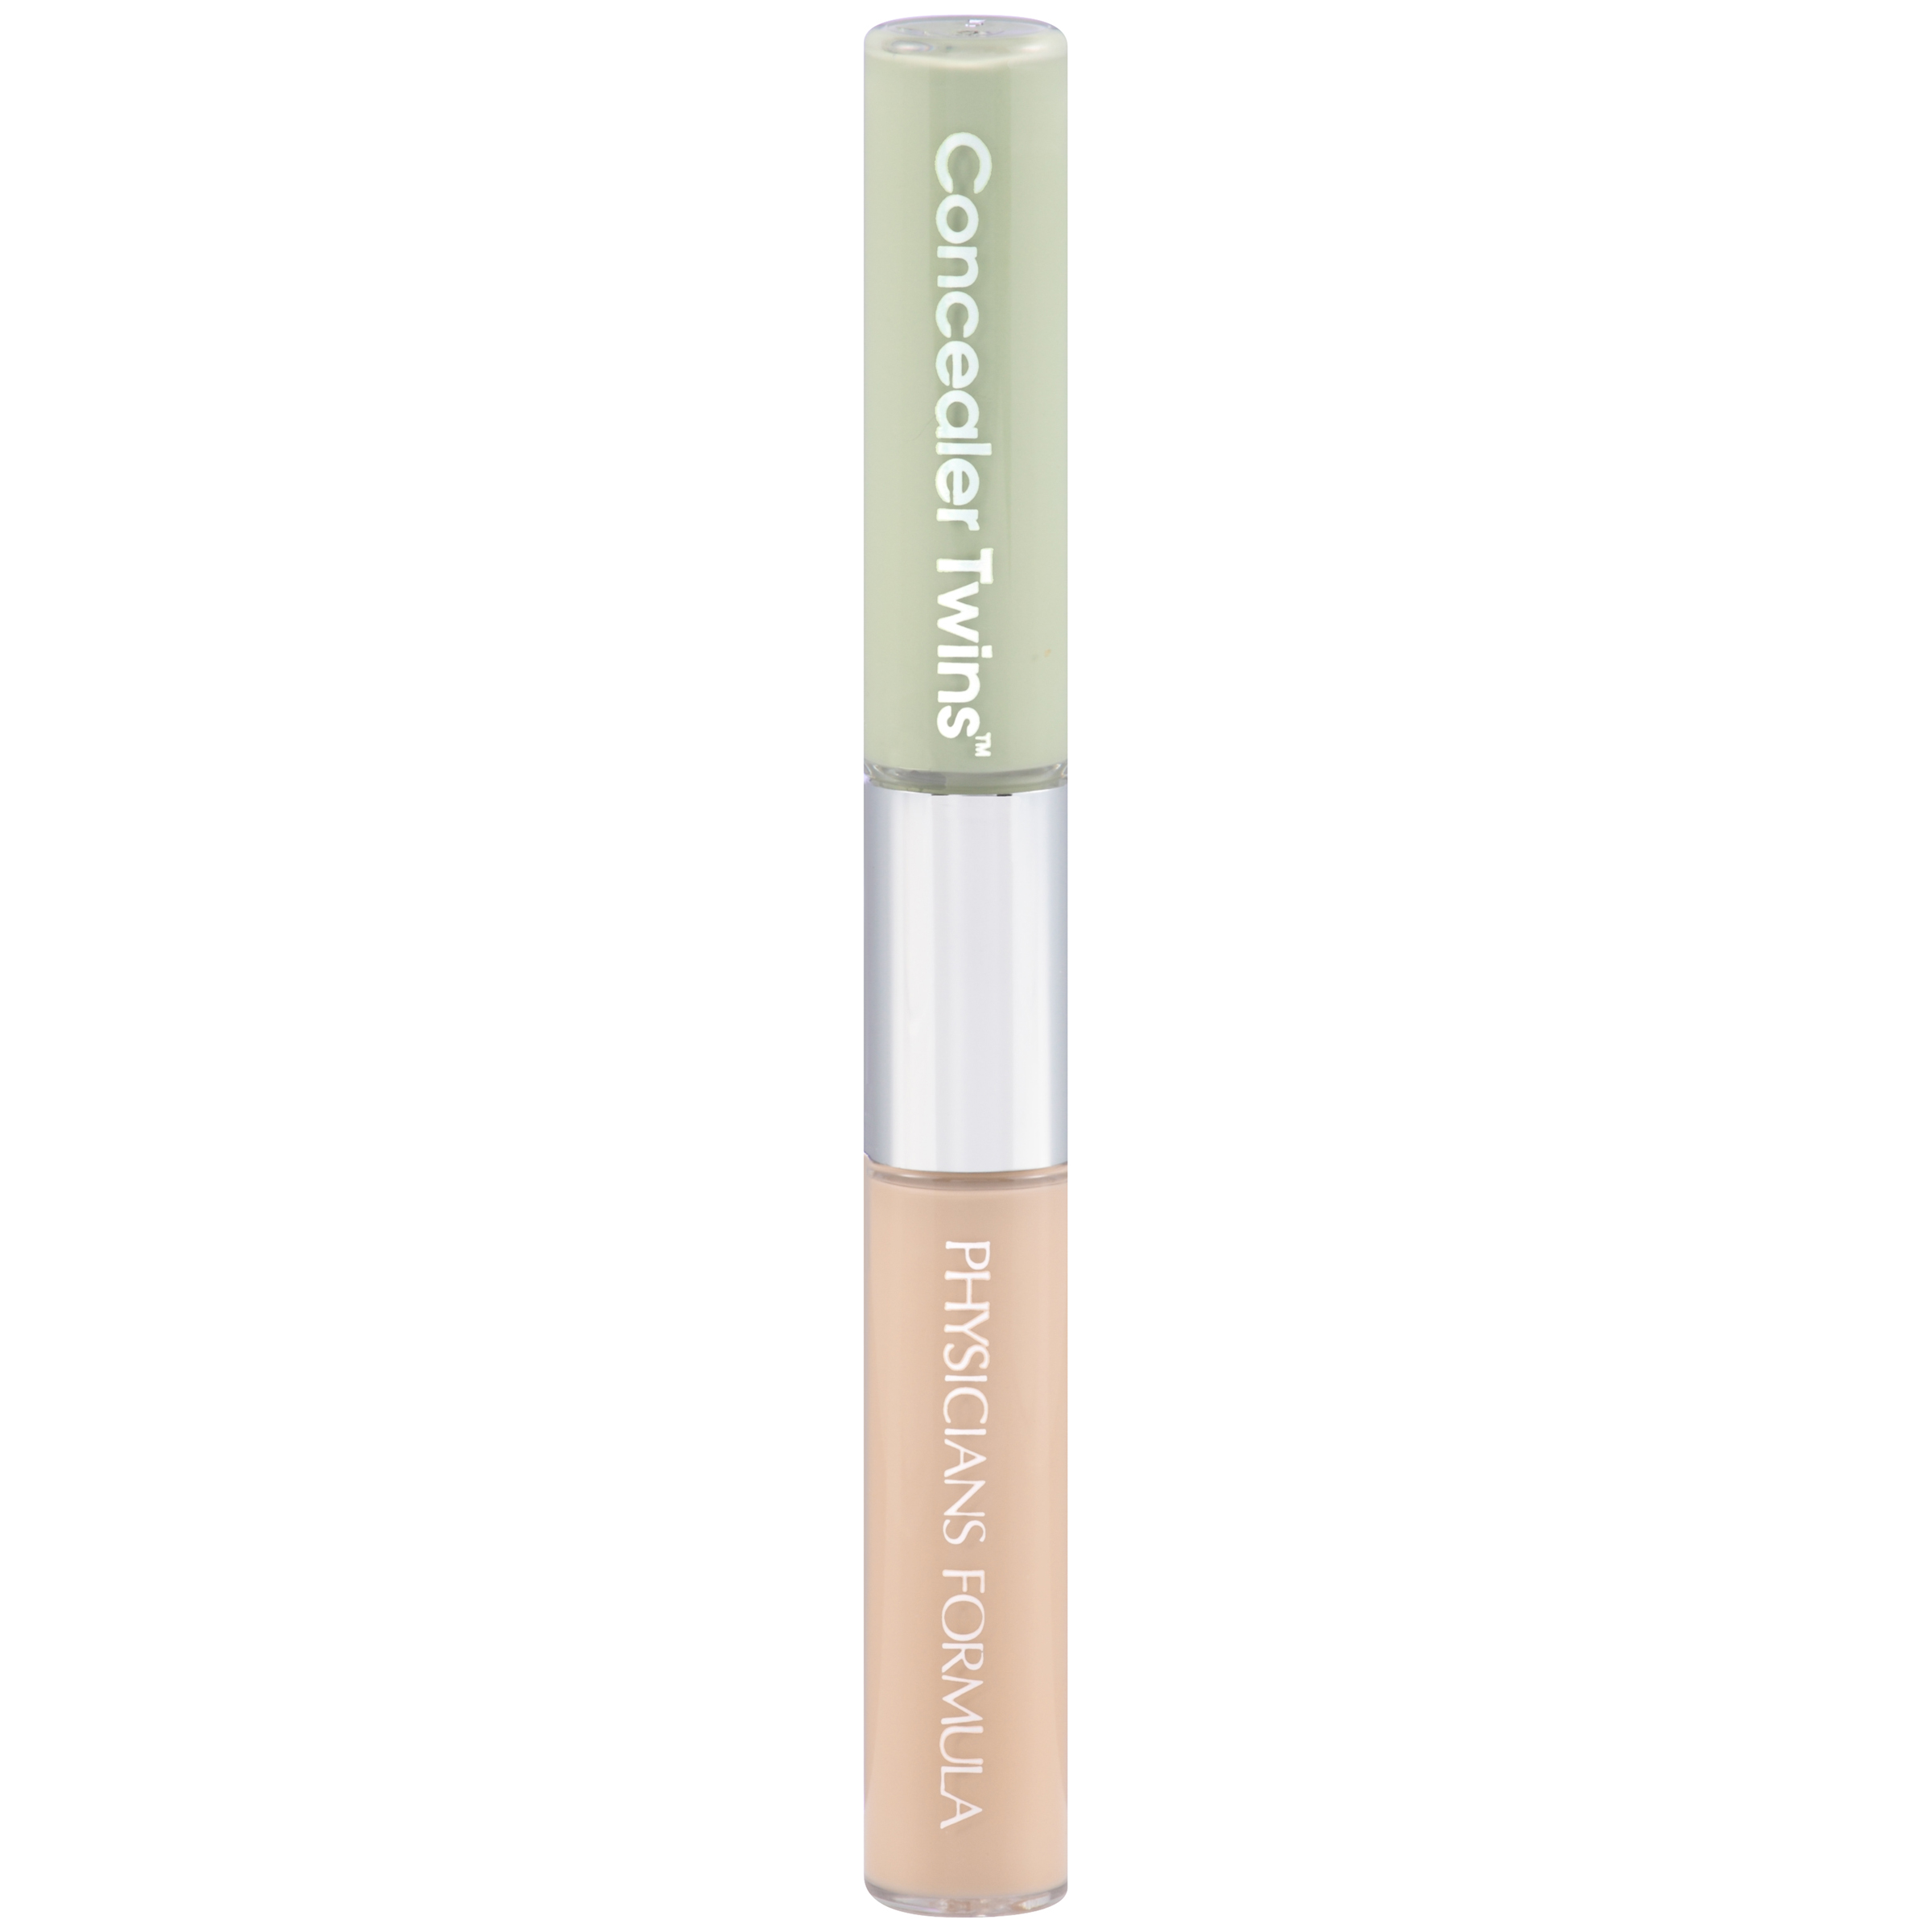 Physicians formula green concealer review